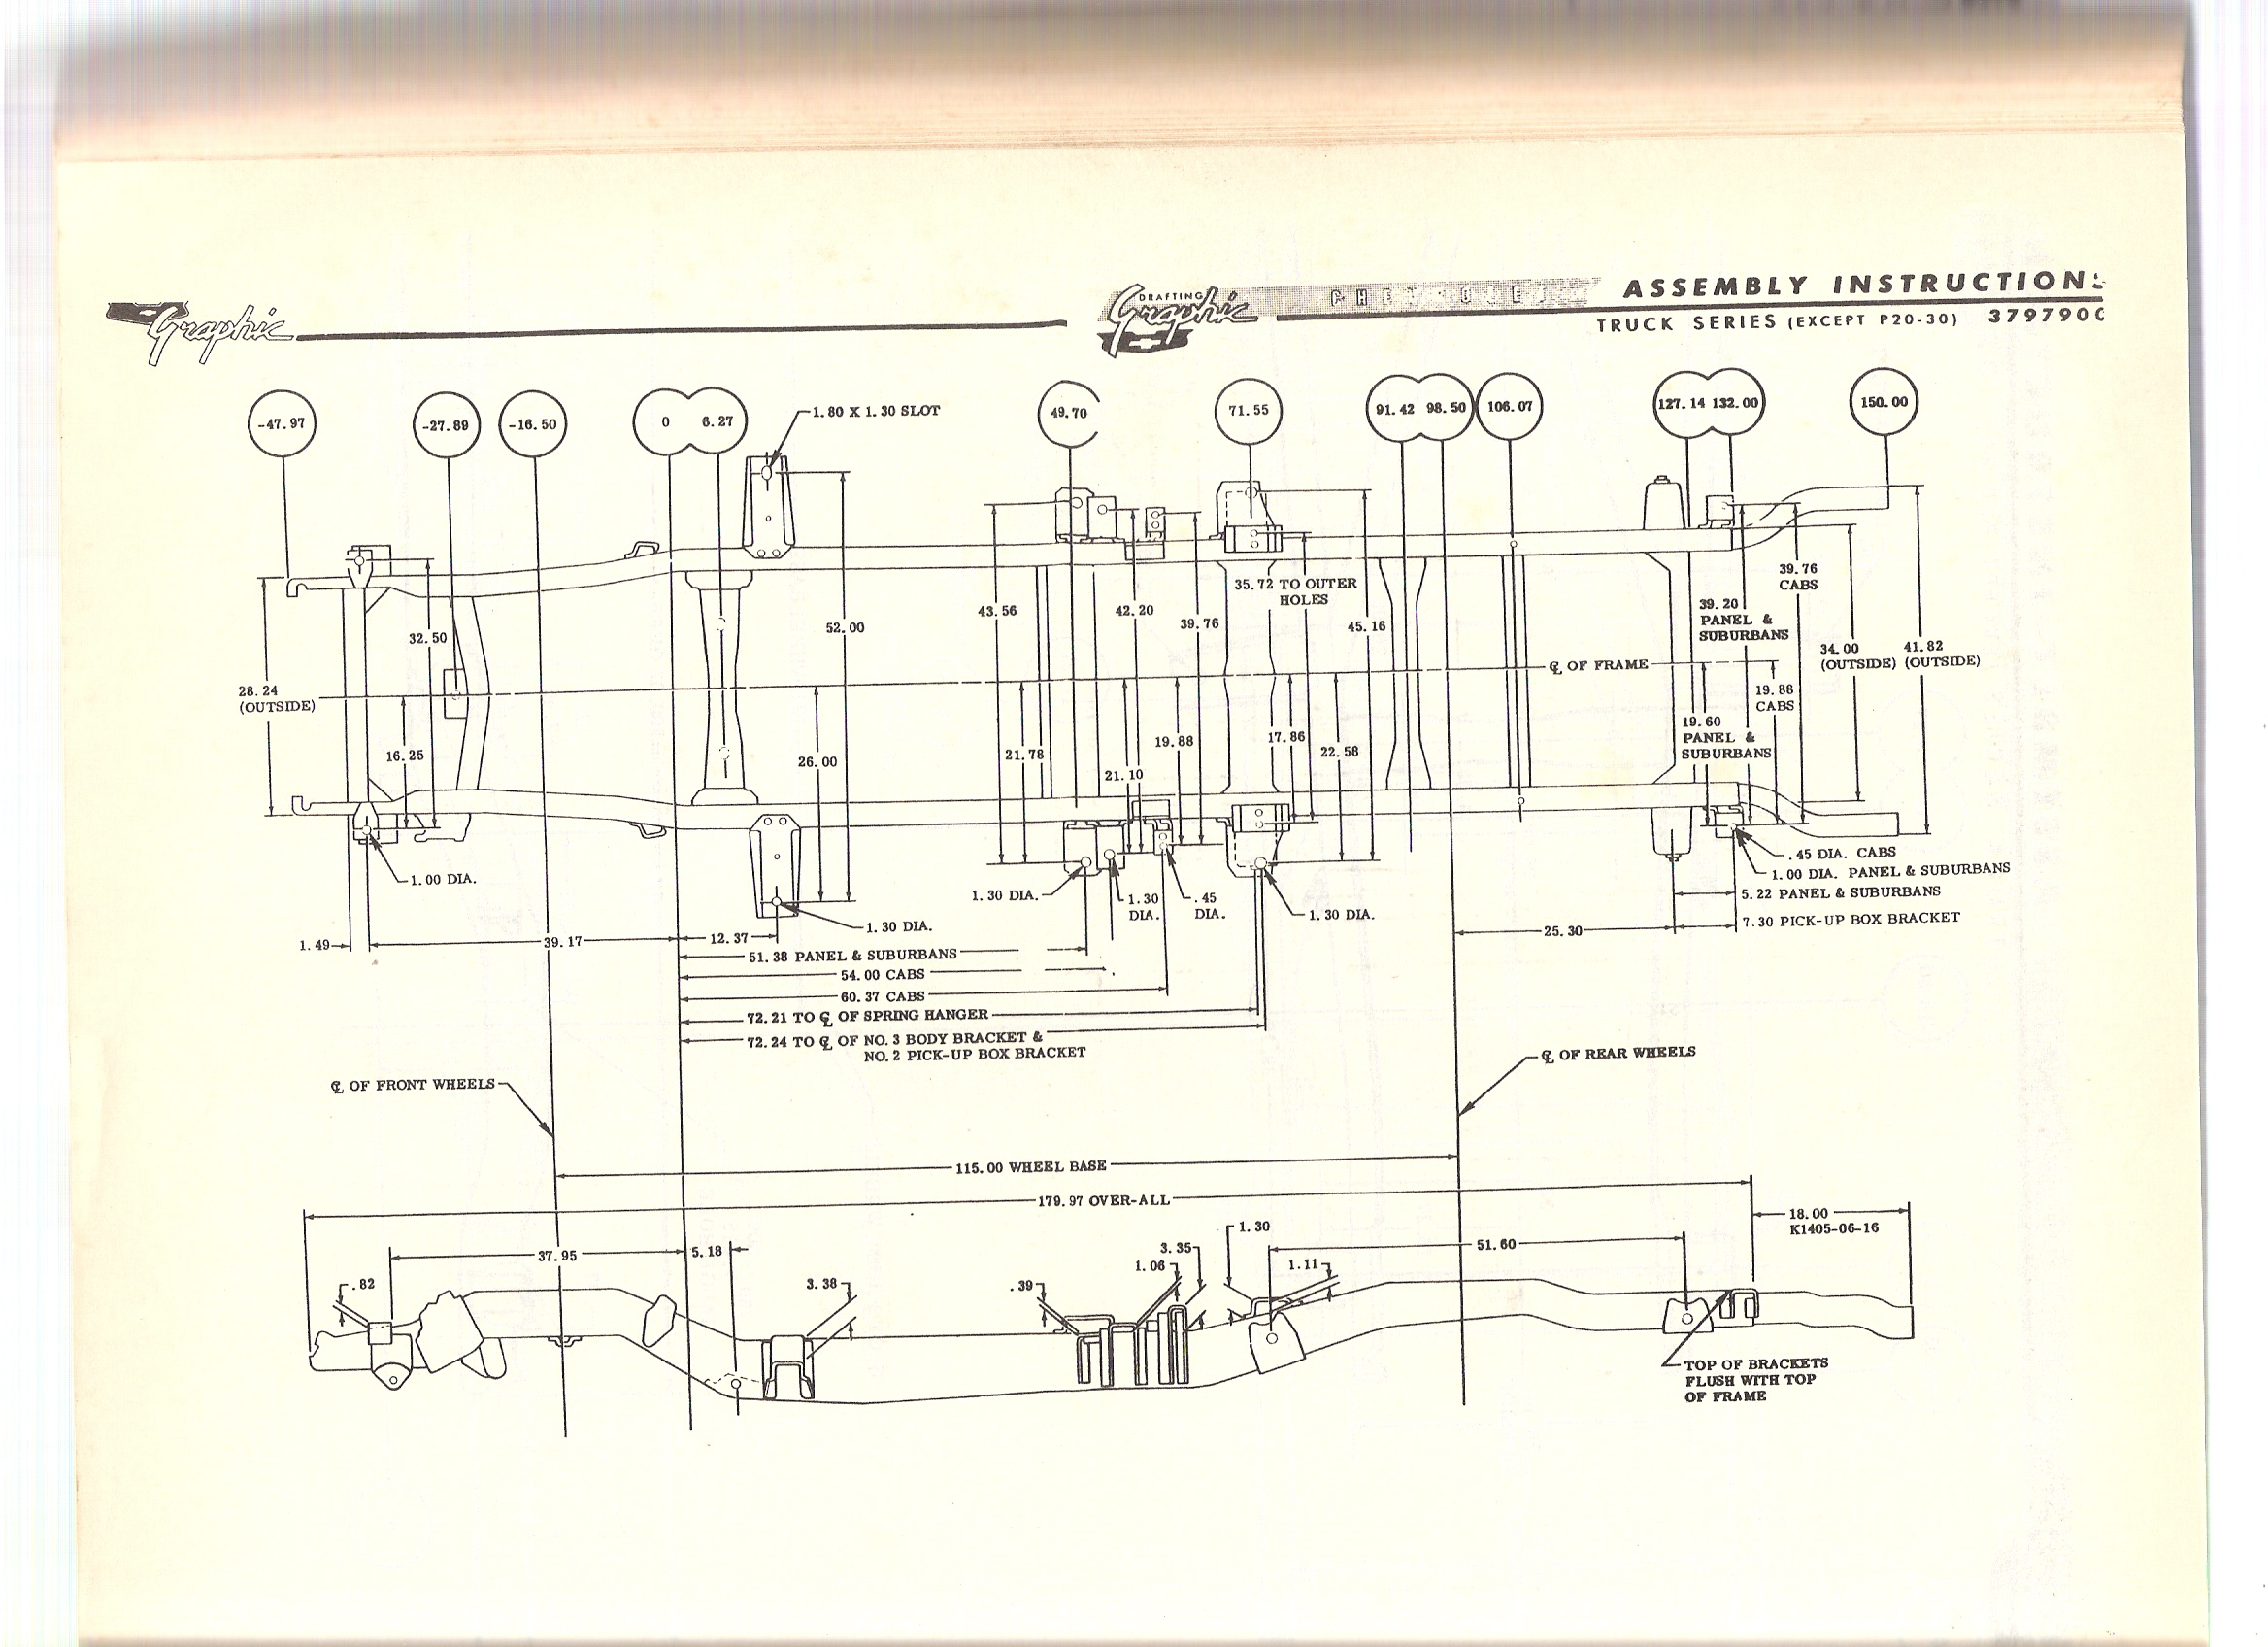 1960 66 chevy gmc truck frame diagram the 1947 present lets try to make it a little easier